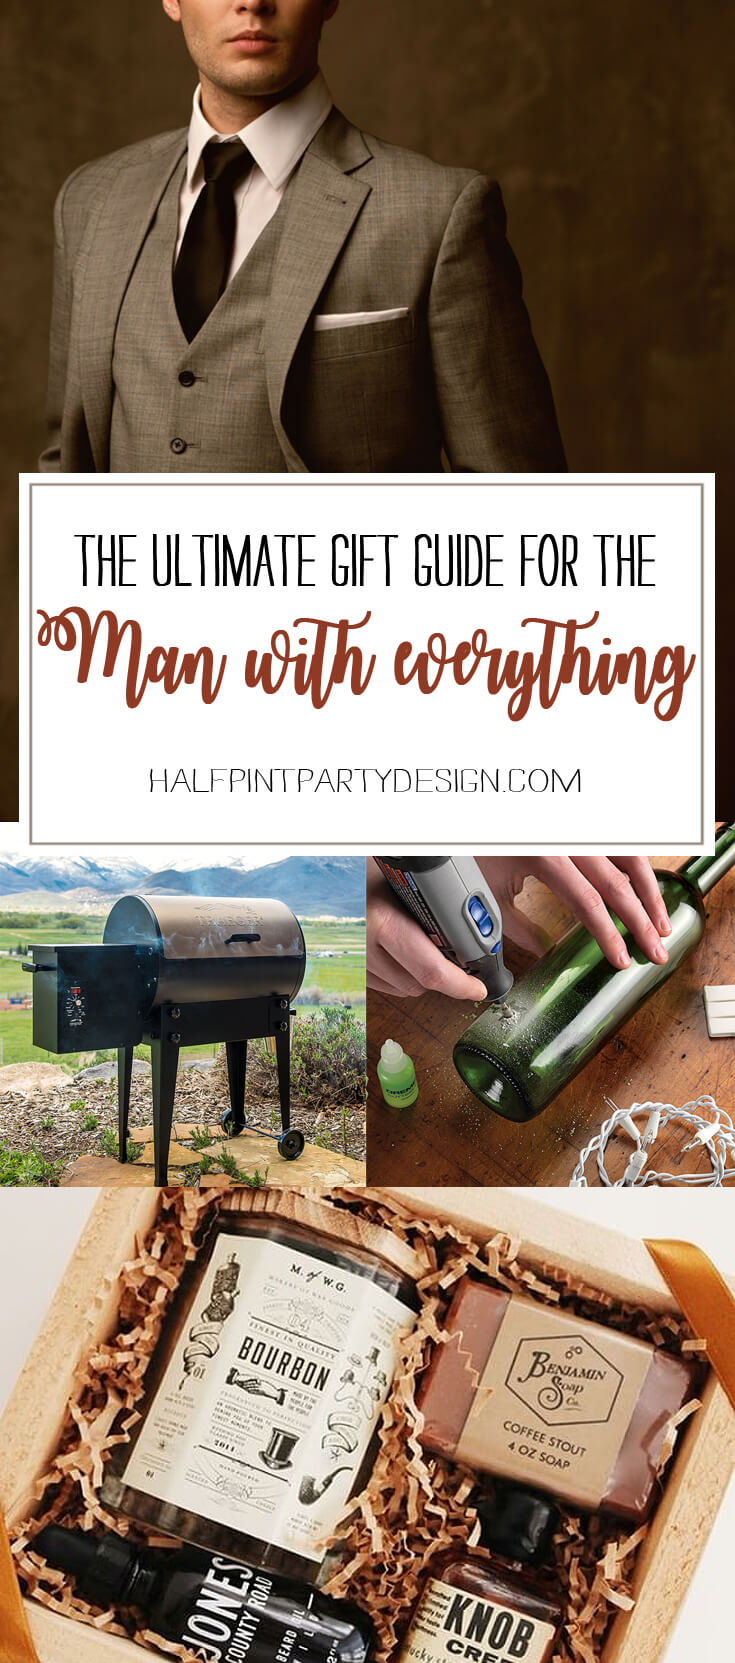 Have a difficult man in your life making gift buying a headache? For 15 great ideas check out the Ultimate Gift Guide for the Man who has Everything at Halfpint Design. Christmas gift ideas, men's birthday gift ideas.